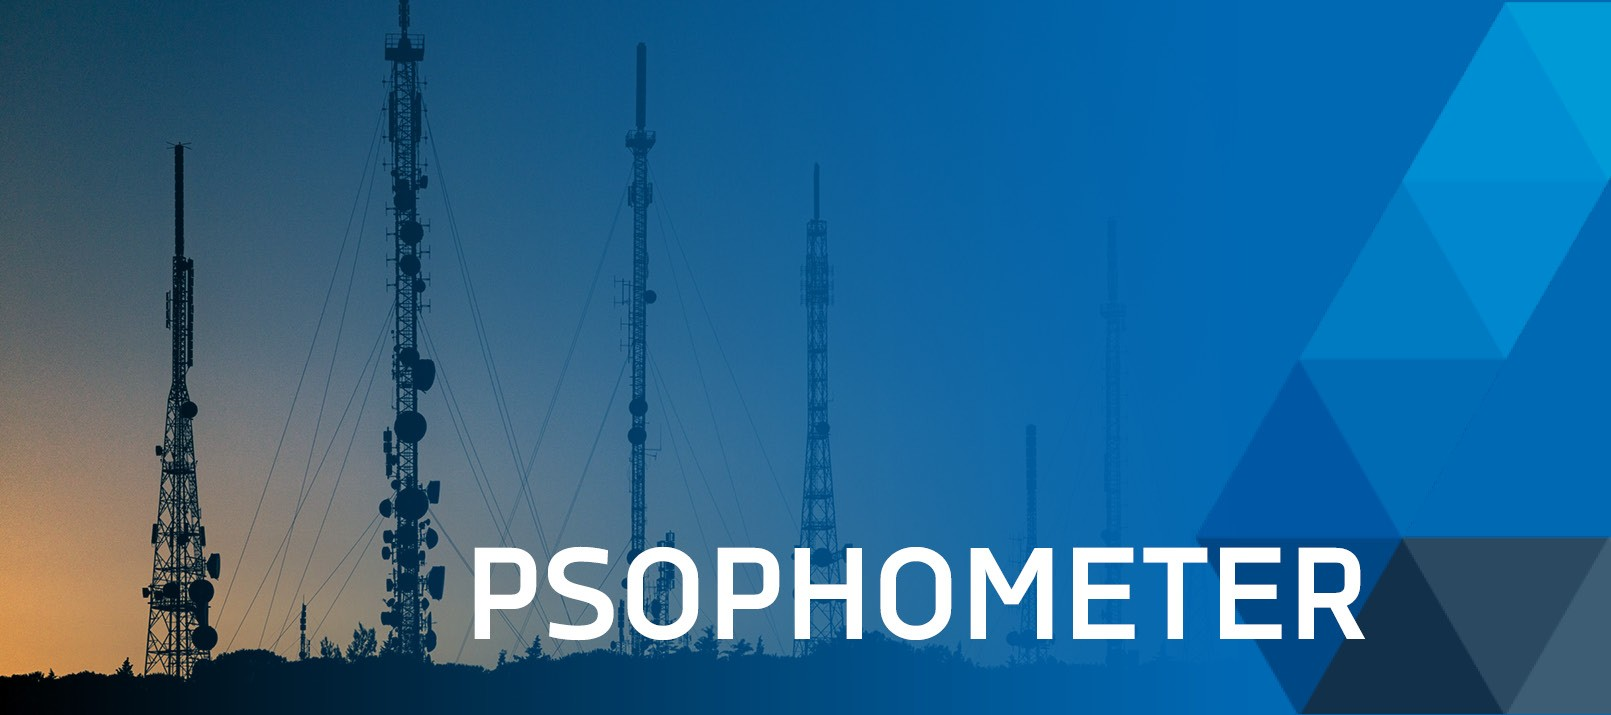 Psophometer used in telecommunication